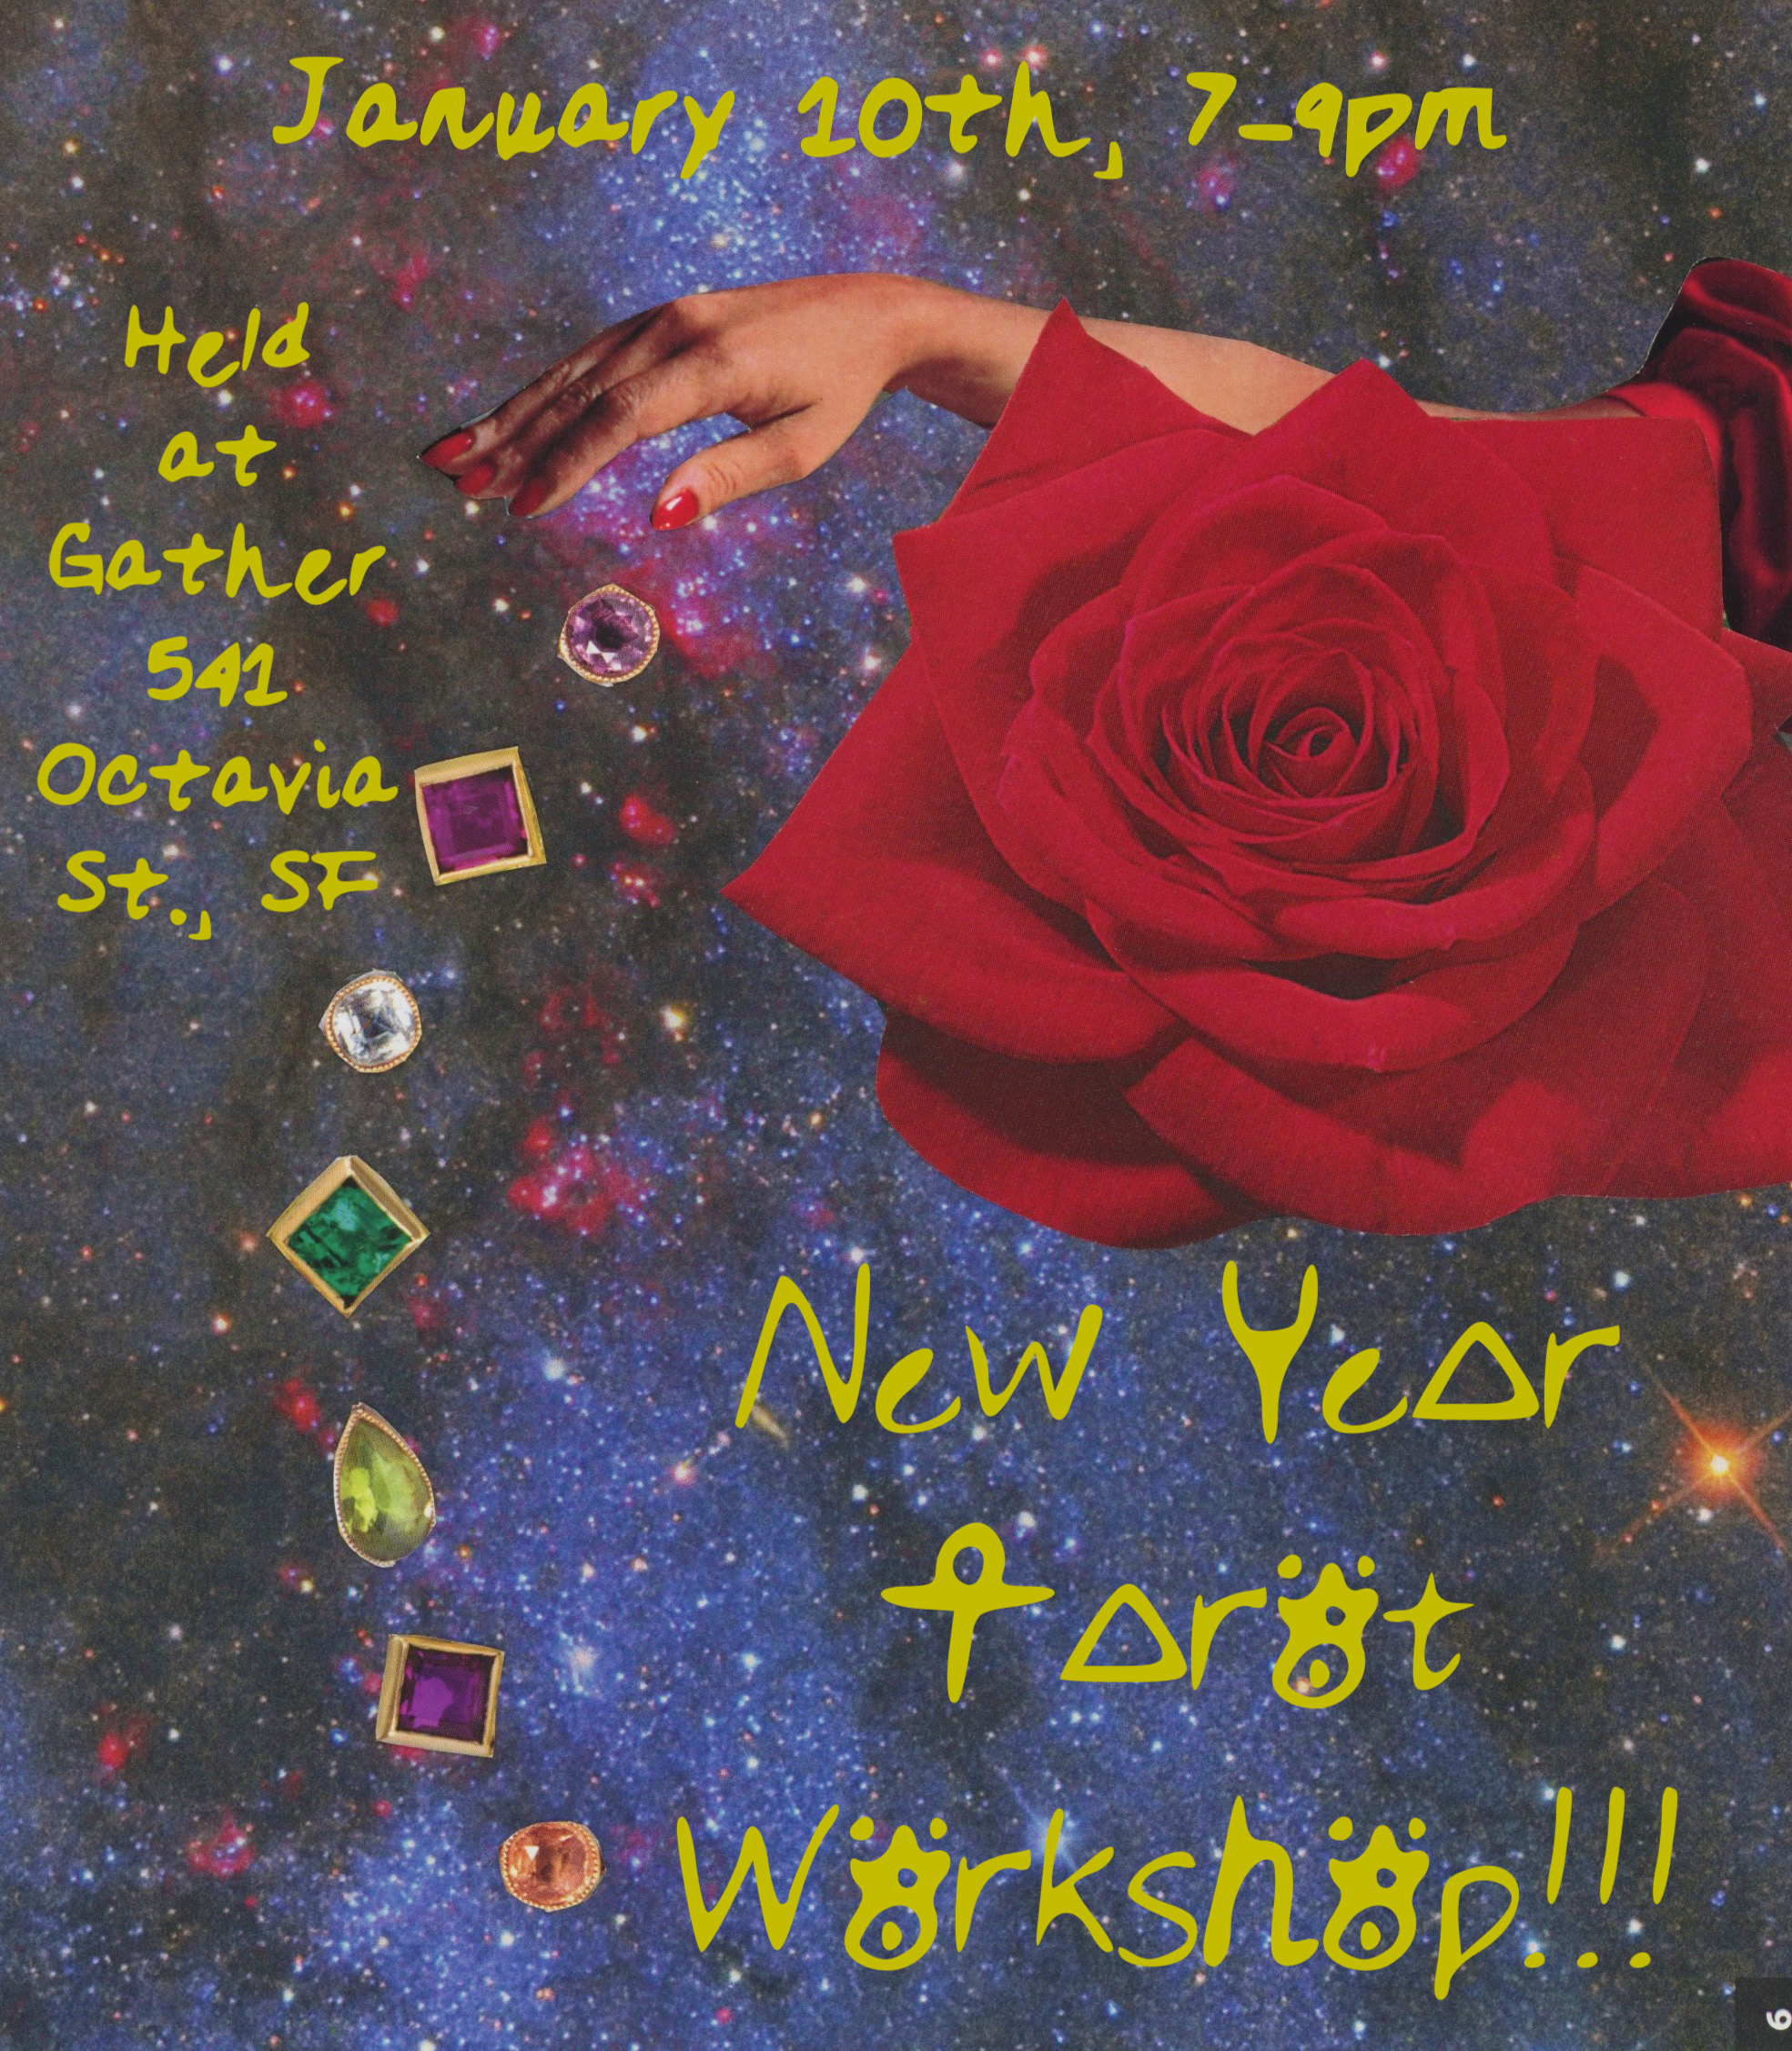 New Year Flyer (1).jpg